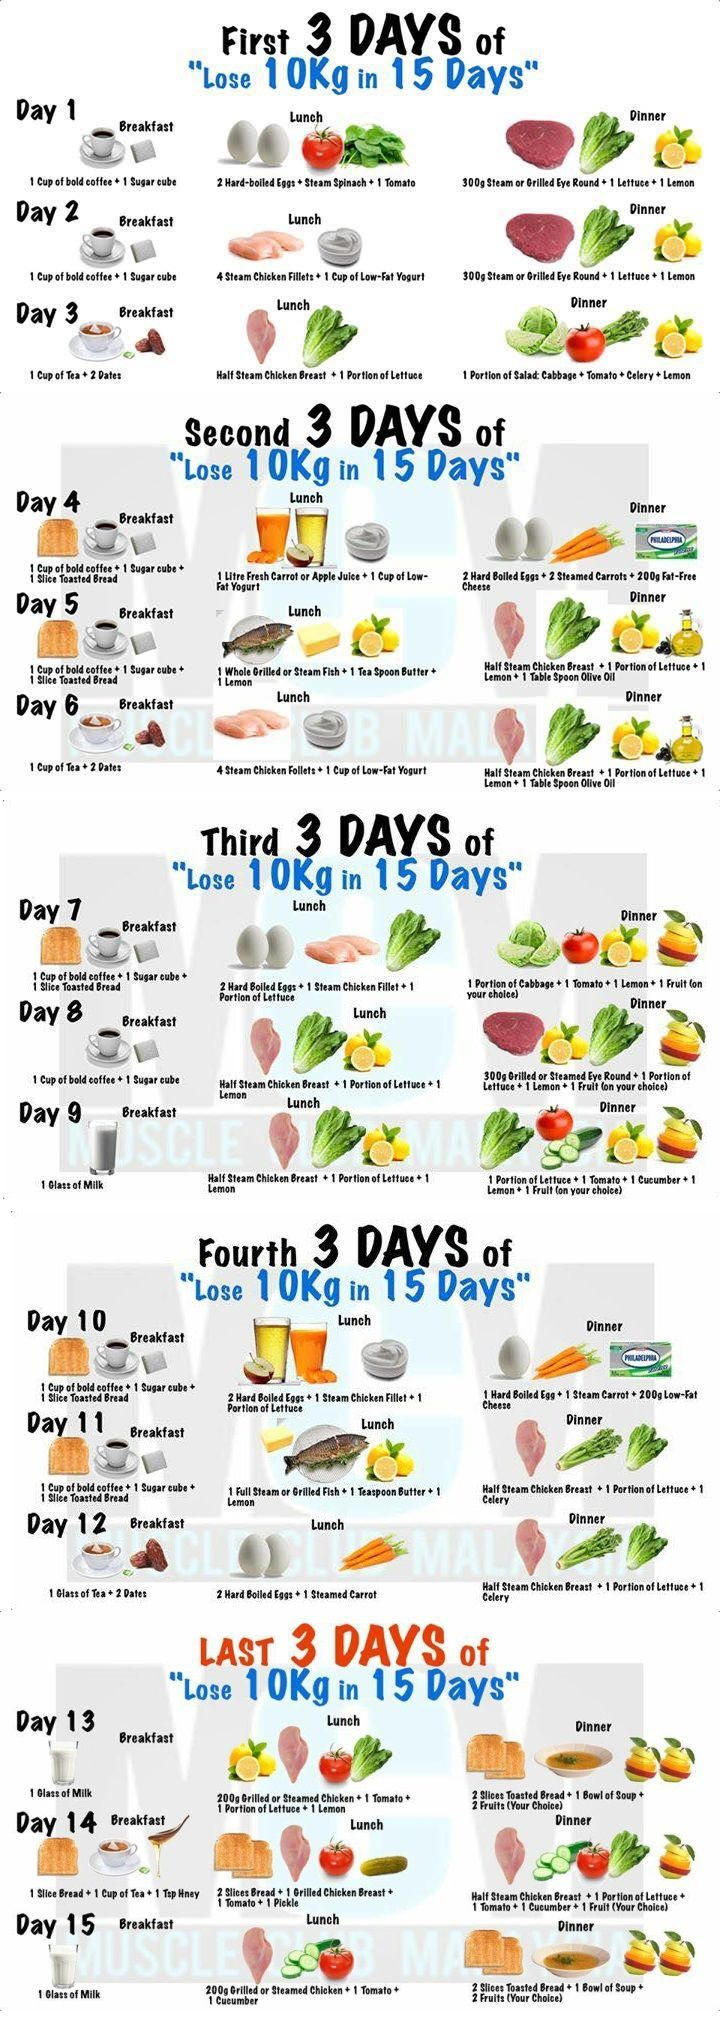 Watch?v=0krtovz92_4 Tags: Lose  Weight In…  Fitness, Healthy Food & Diet  Pinterest  Tags, Weight Loss  Program